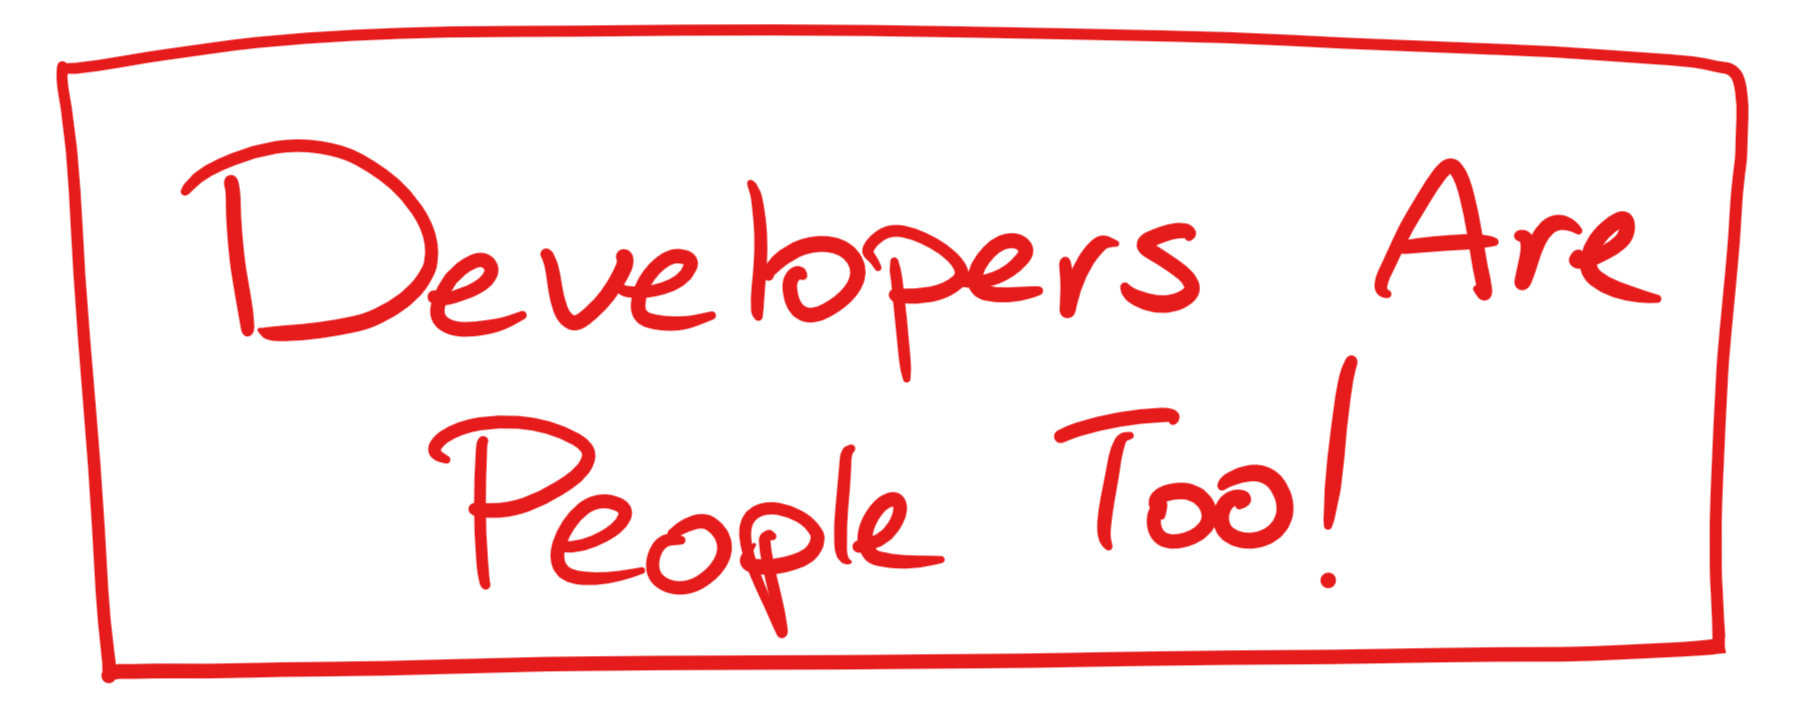 Developers are people too 1.png